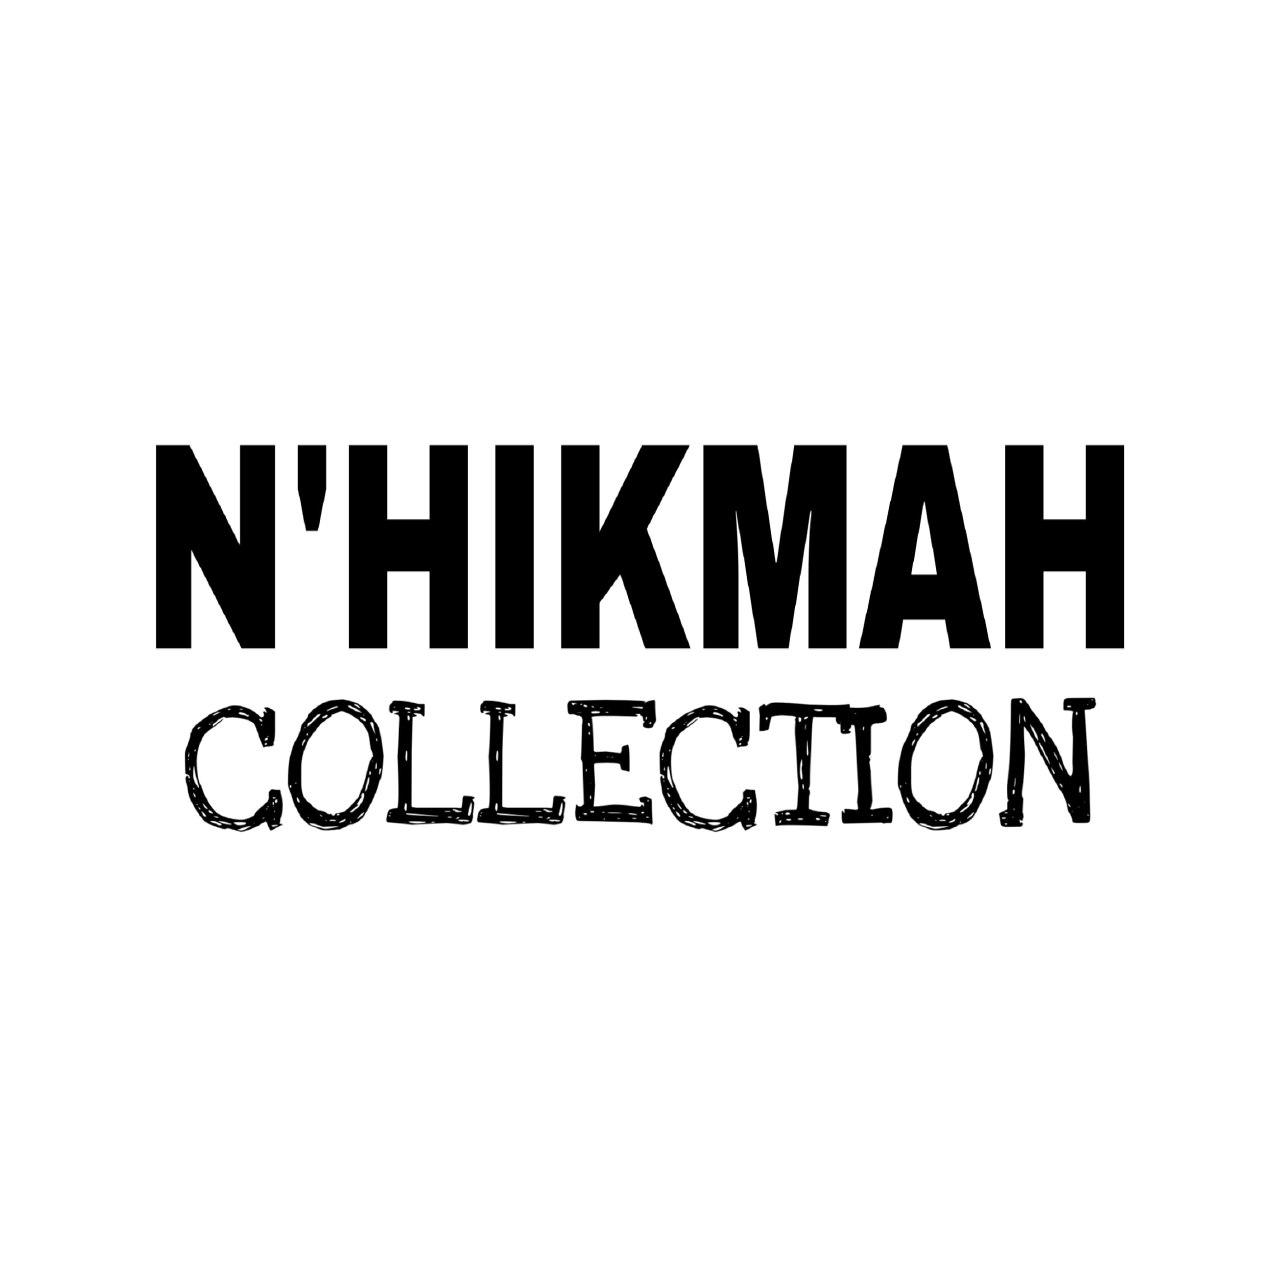 NHIKMAH COLLECTION